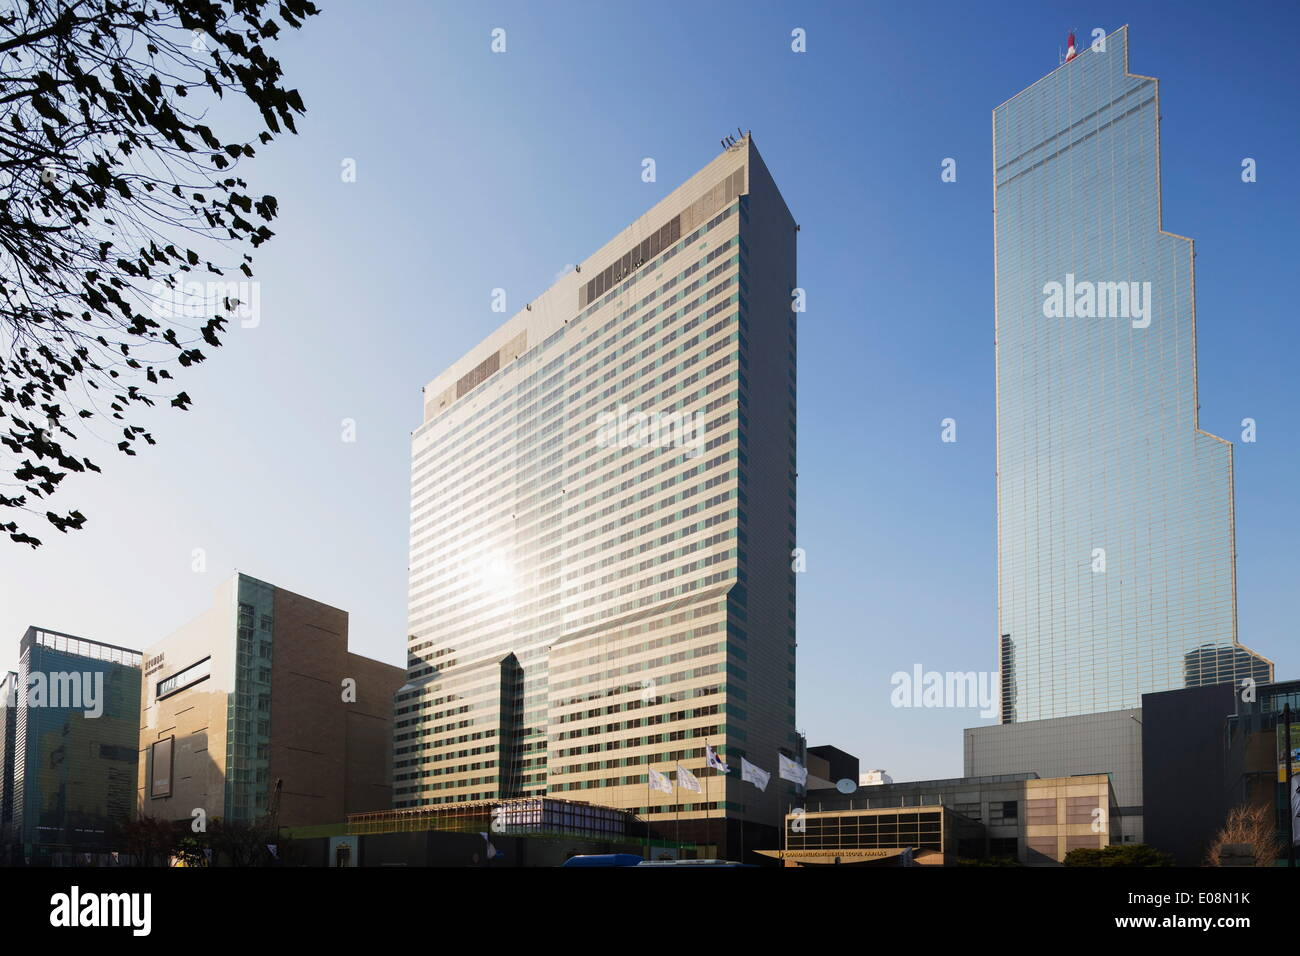 Coex World Trade tower, Seoul, South Korea, Asia - Stock Image